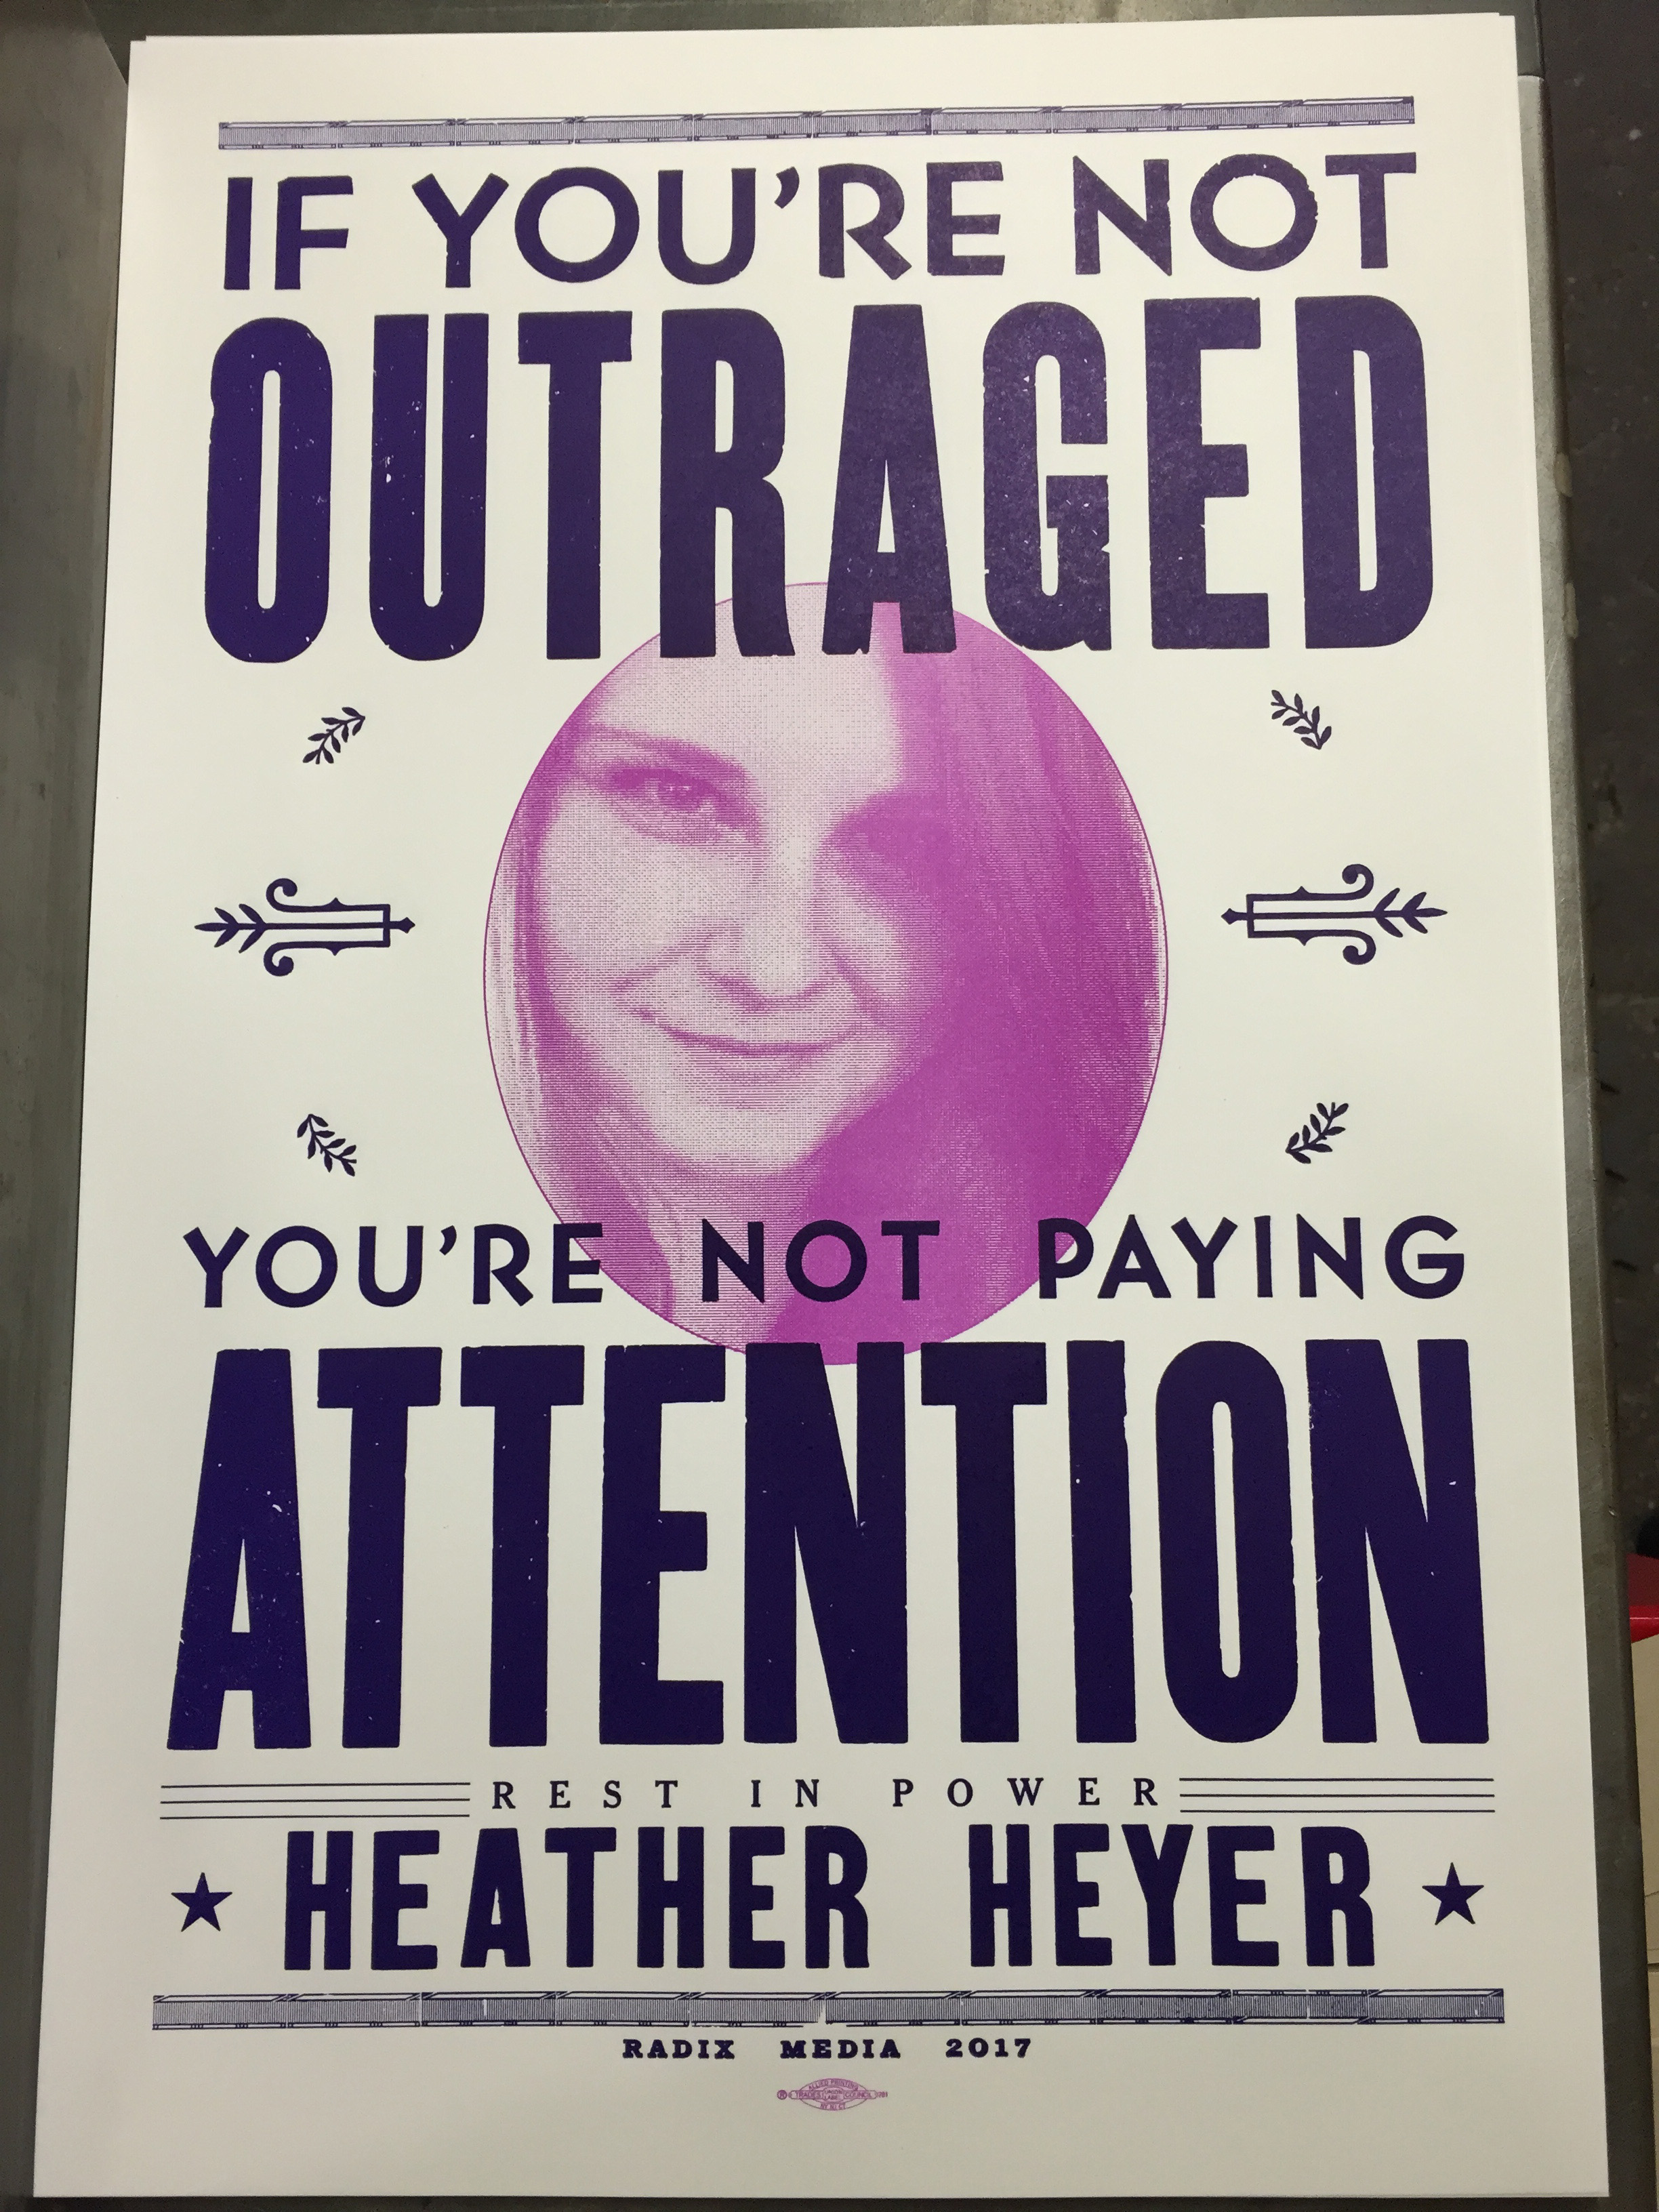 Heather Heyer - Rest in Power